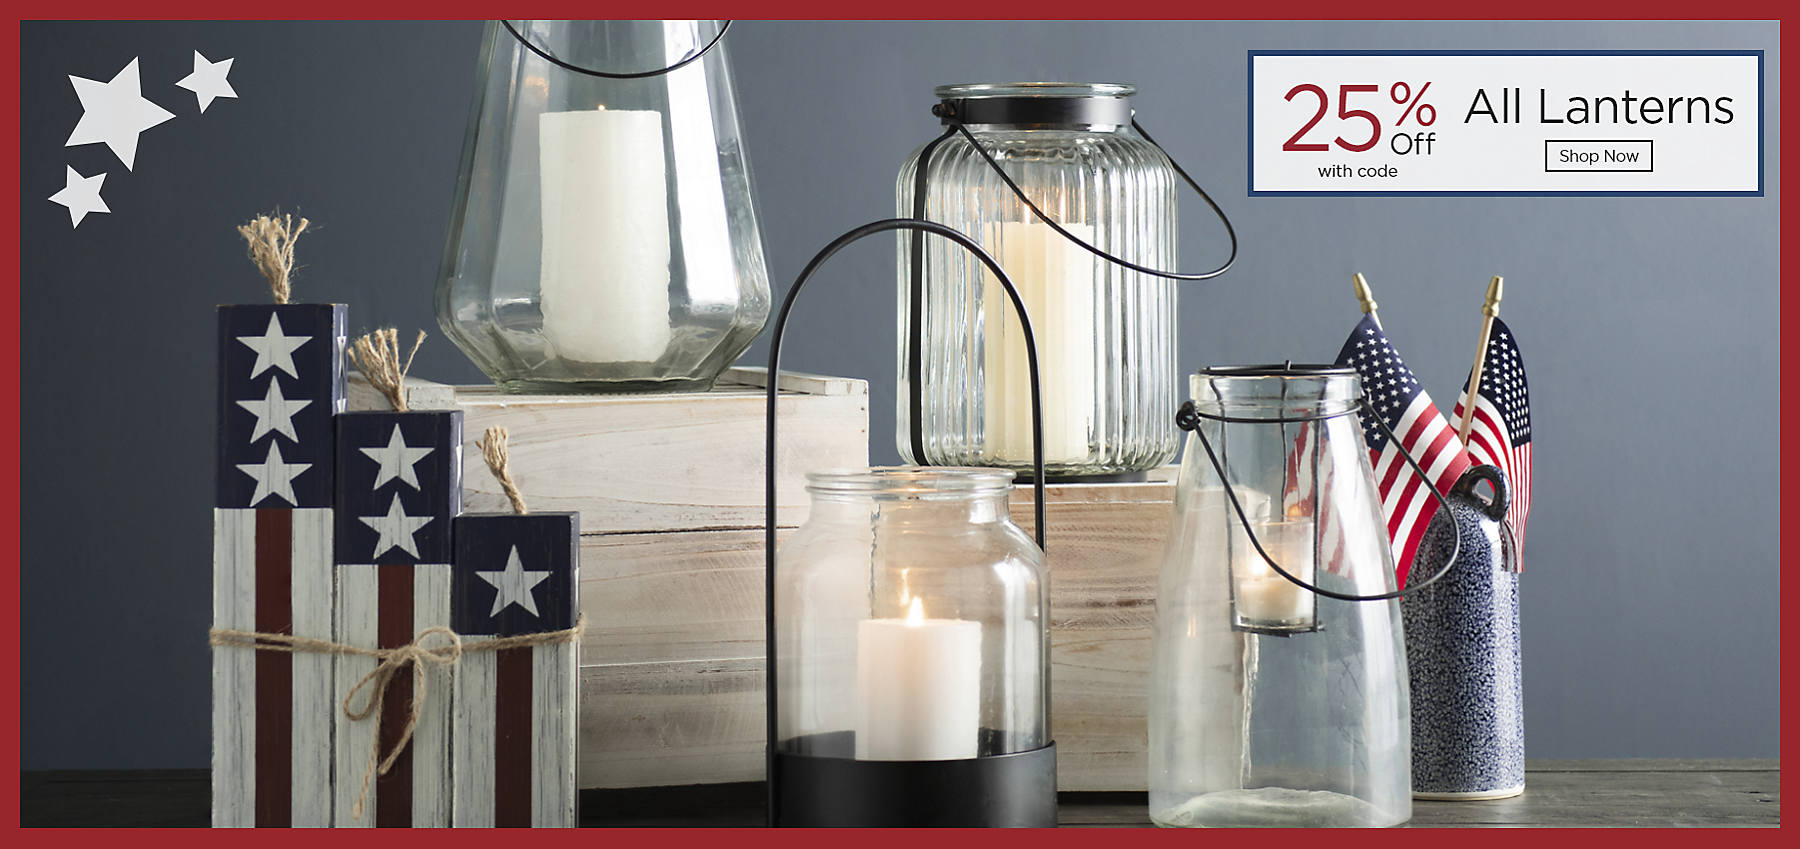 All Lanterns 25% Off with code Shop Now